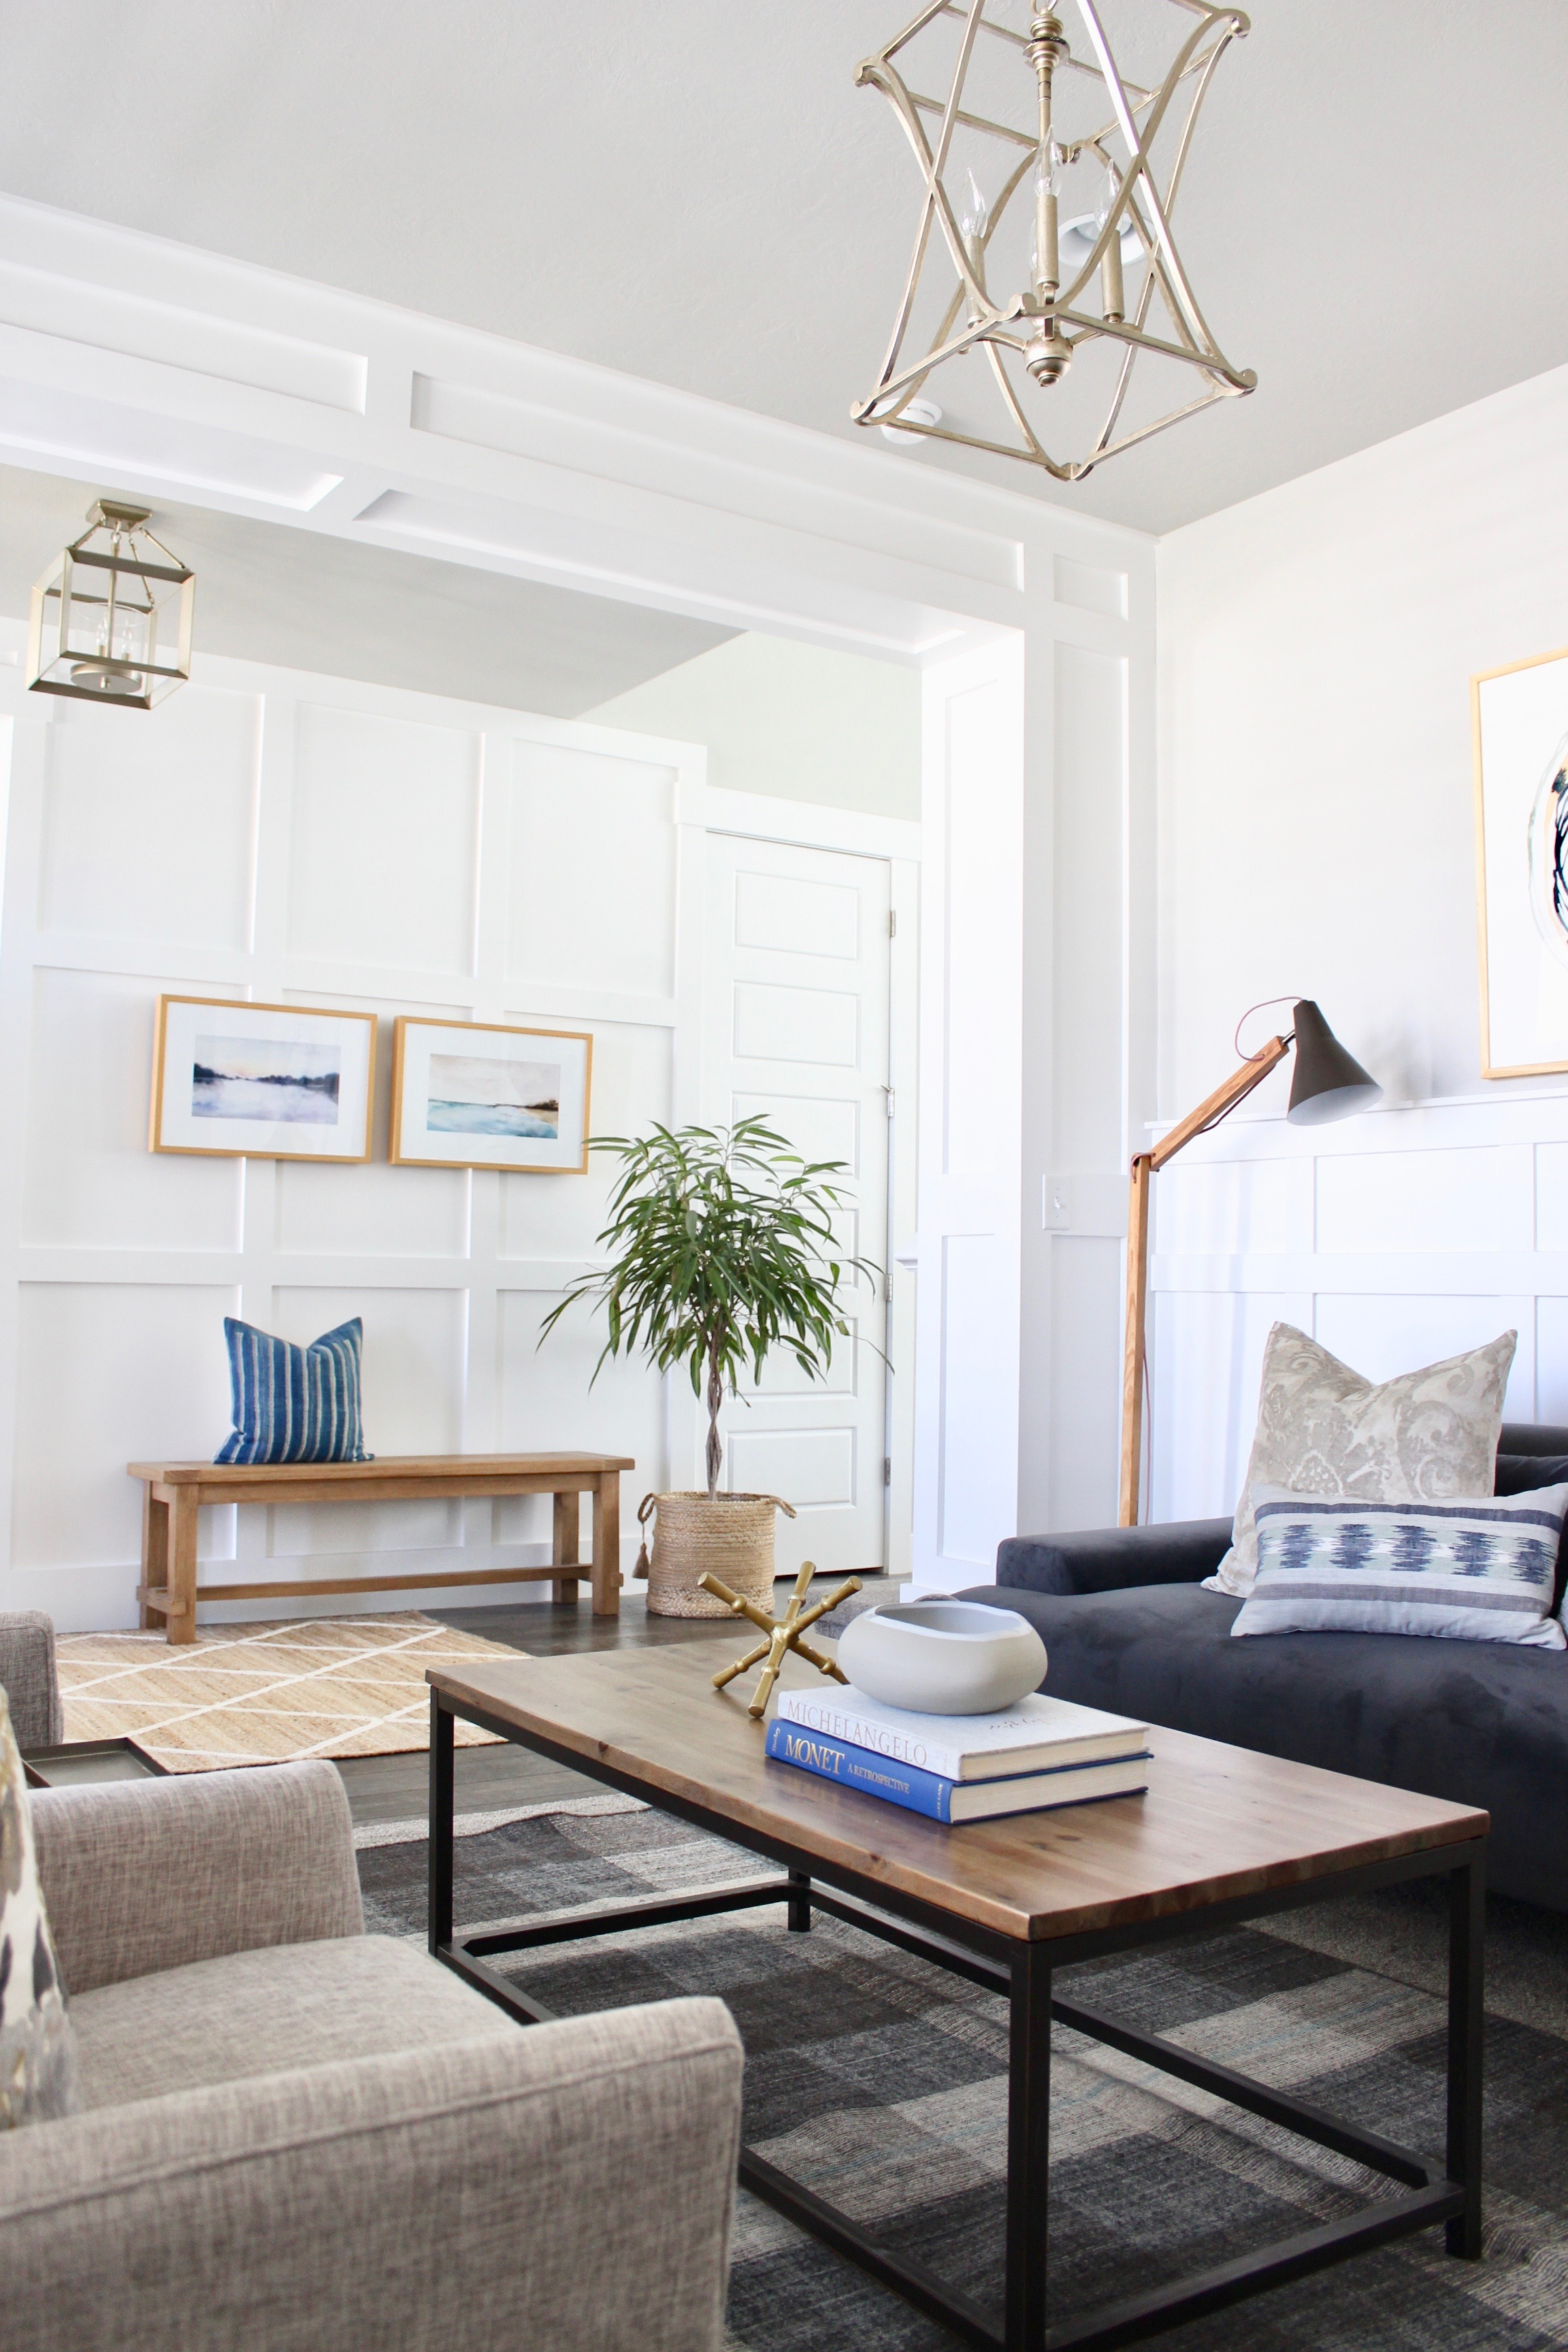 What are these coffee table alternatives called?